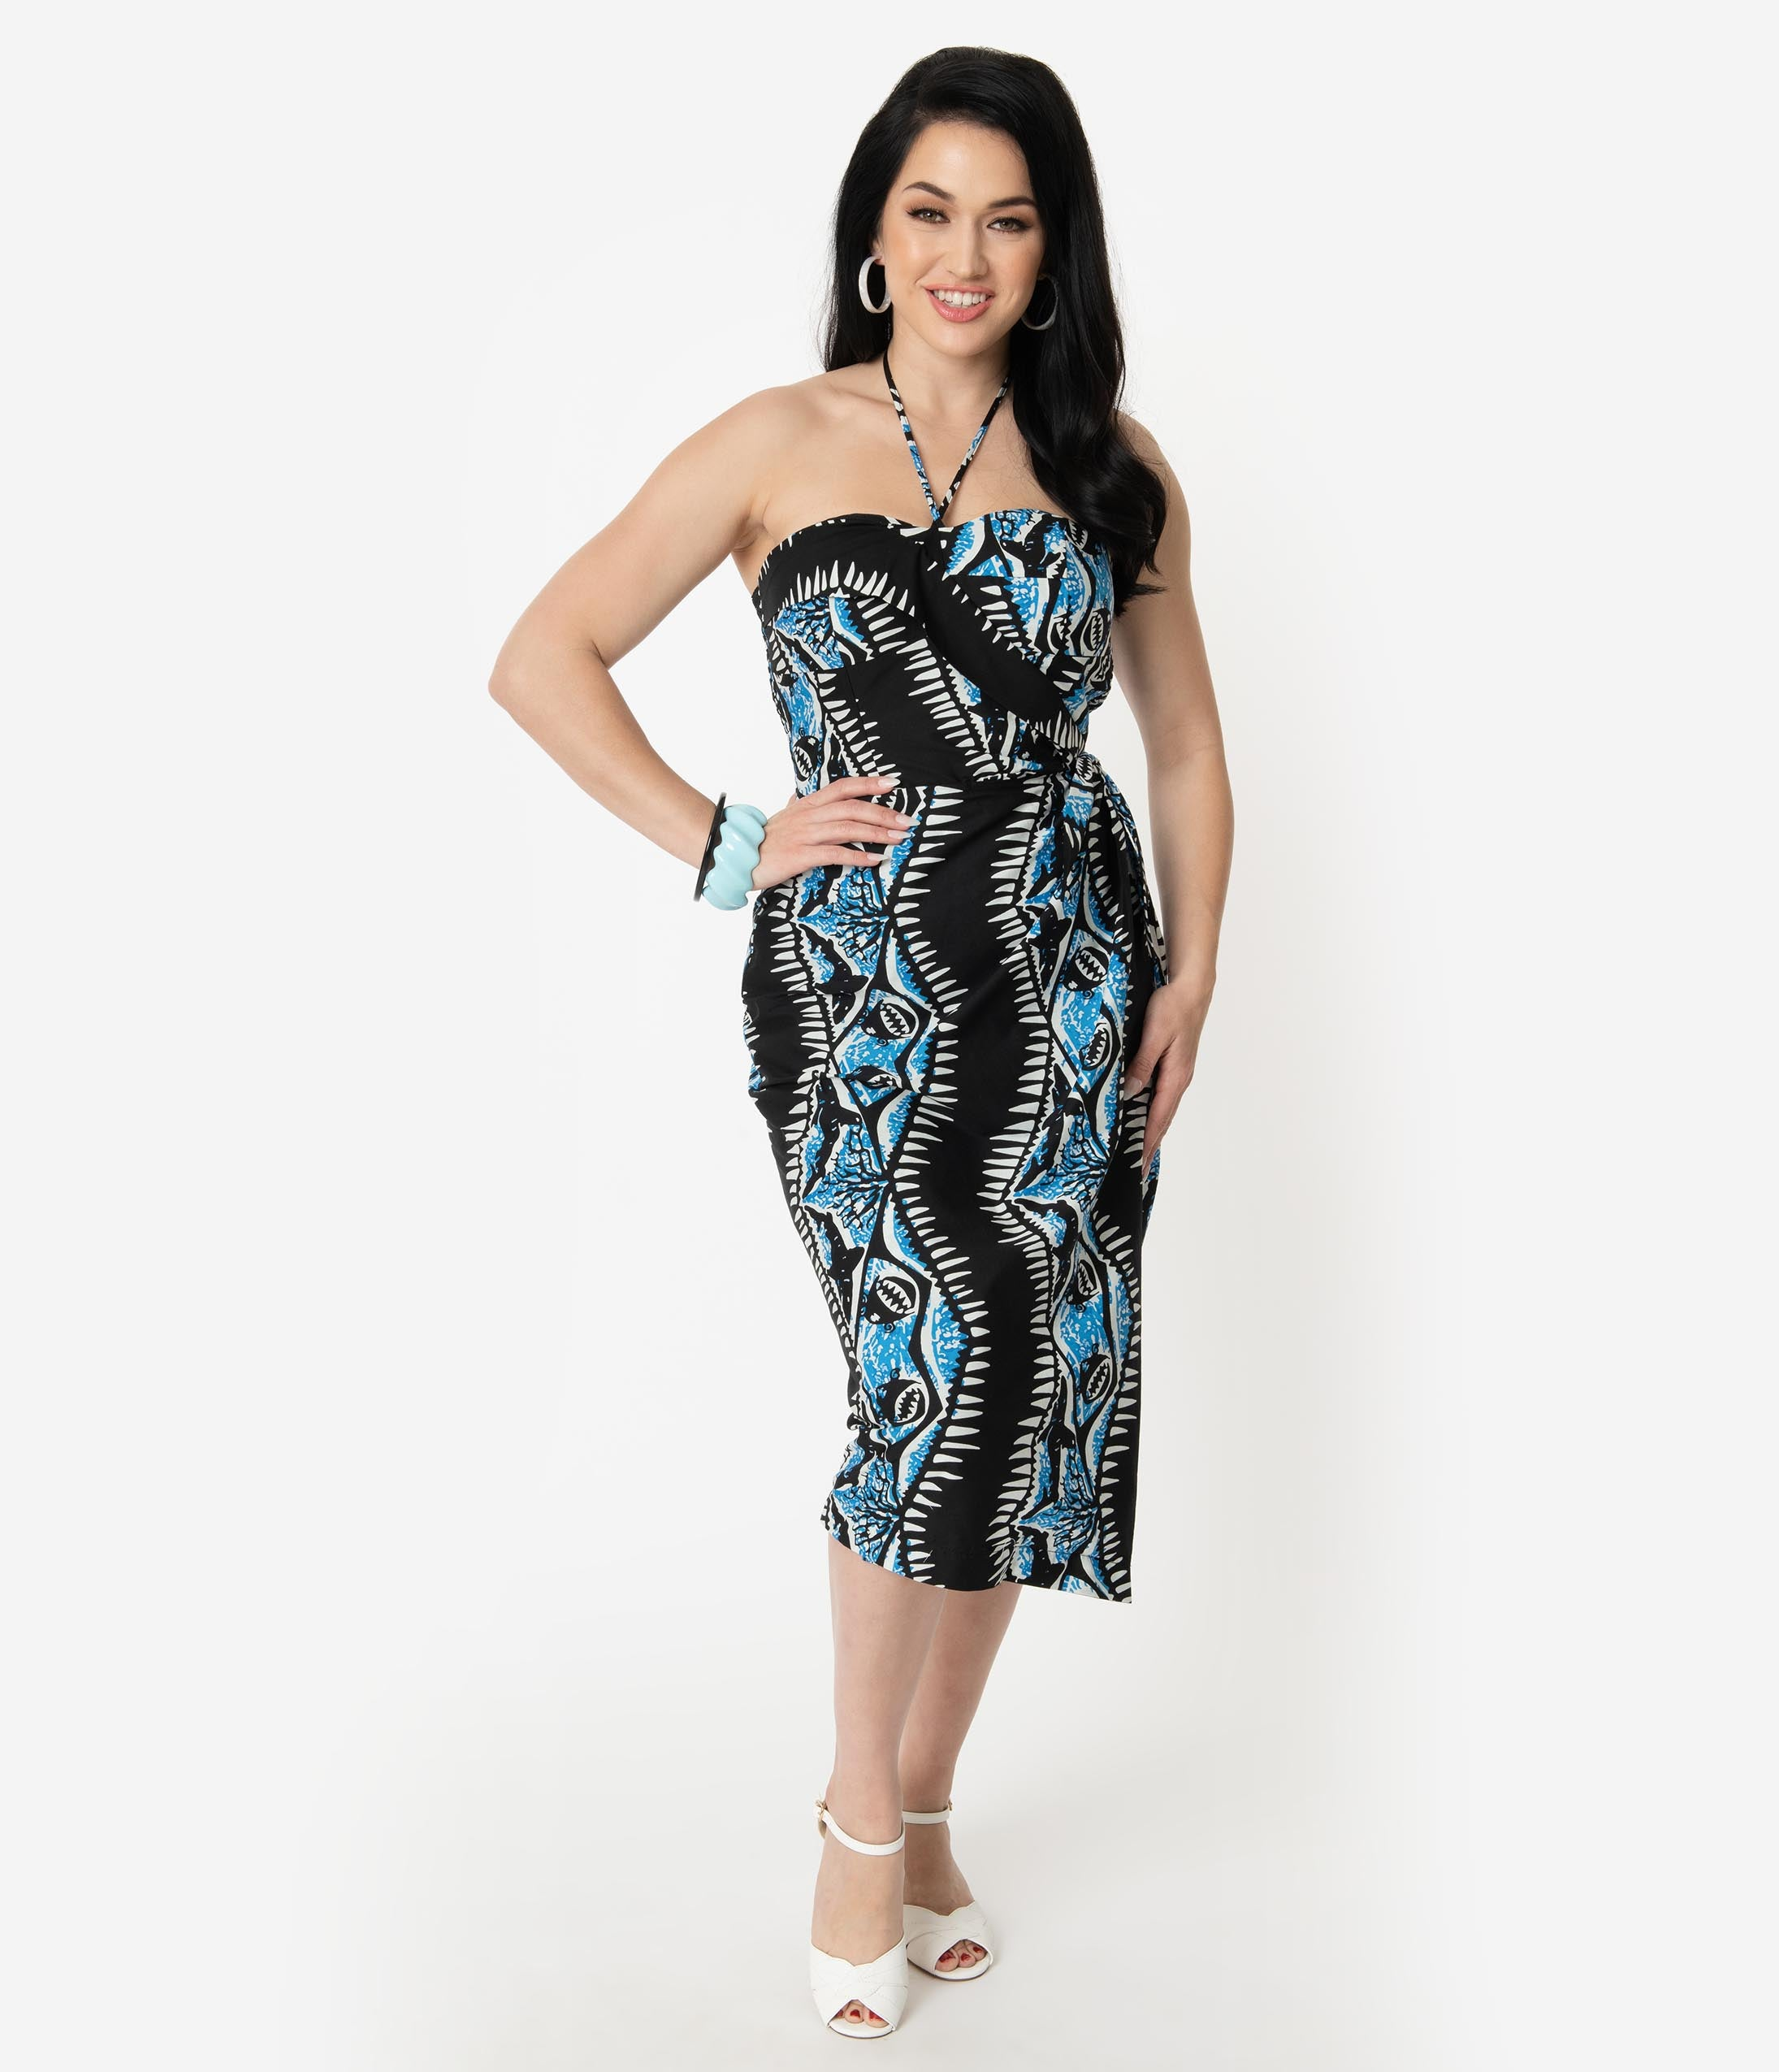 New Fifties Dresses | 50s Inspired Dresses Alfred Shaheen Black  Blue Shark Print Sarong $89.00 AT vintagedancer.com